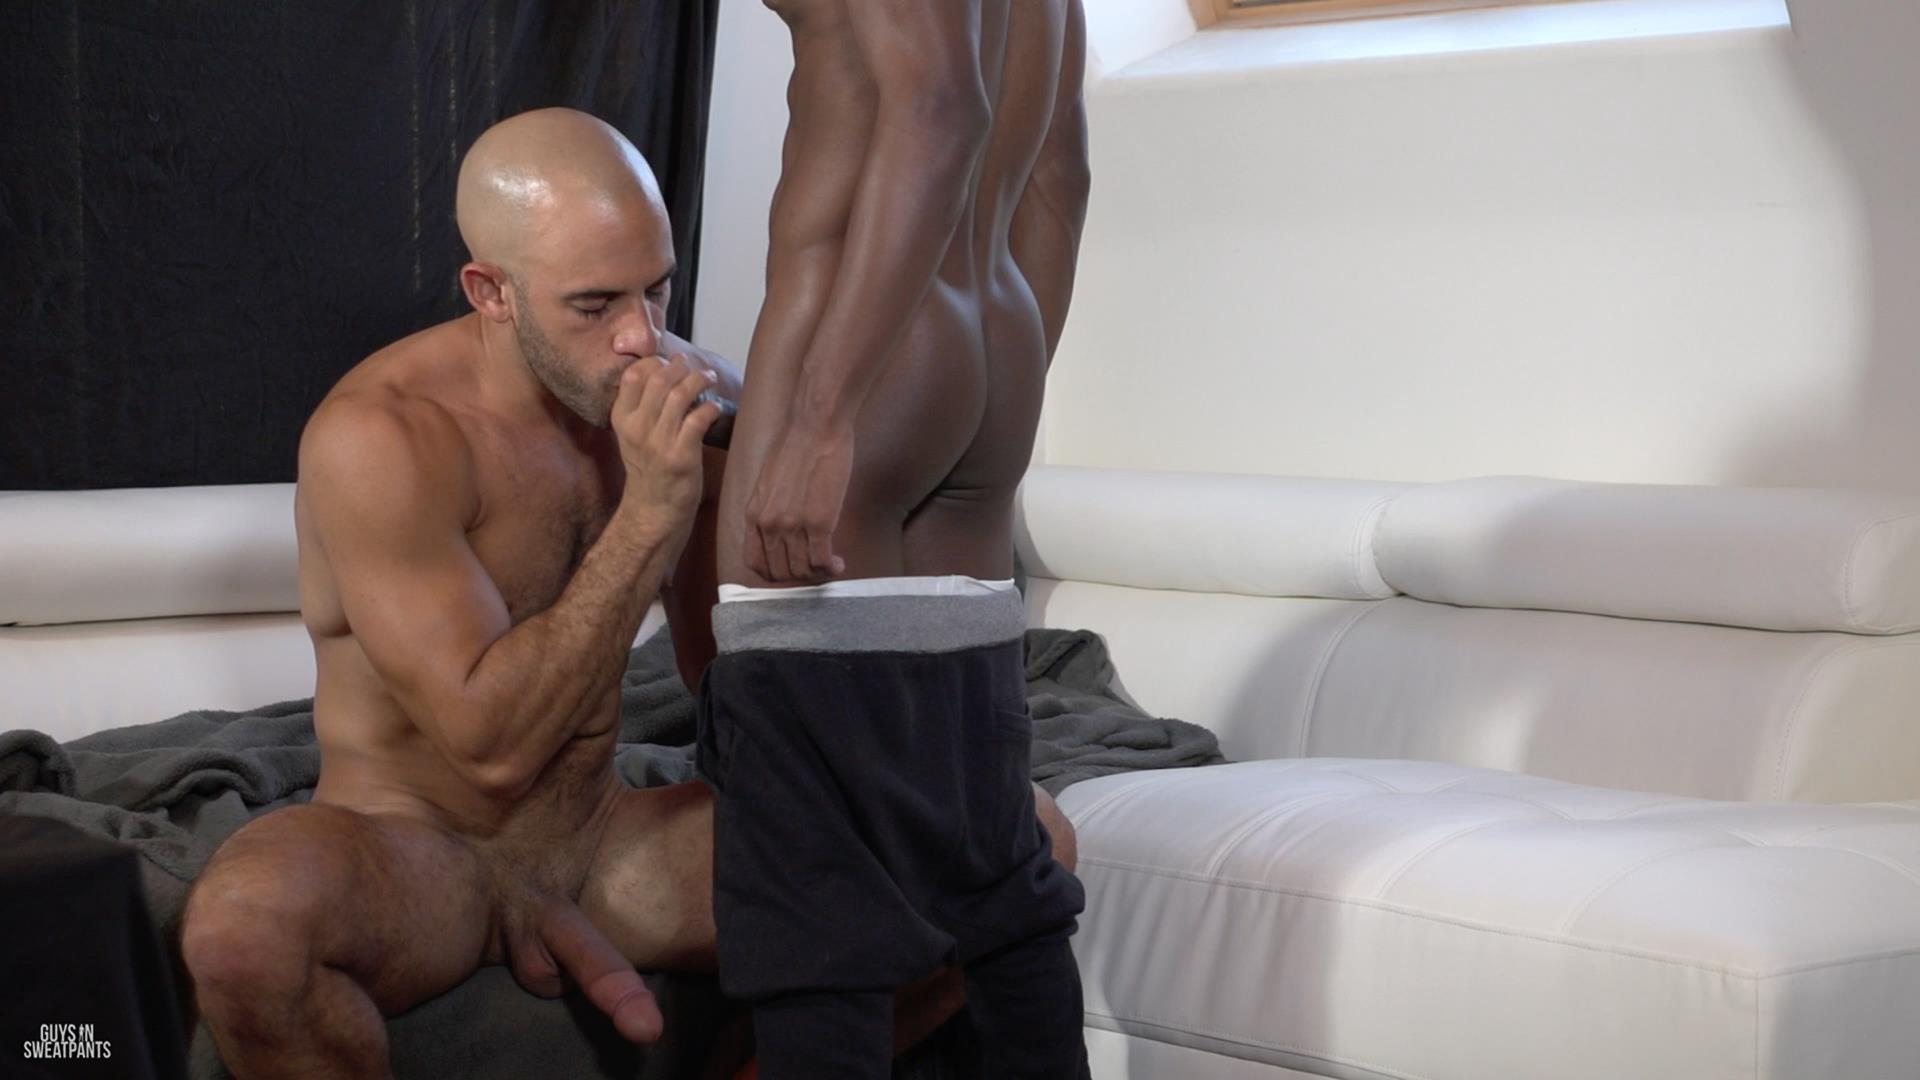 Guys in Sweatpants Austin Wilde and Liam Cyber Bareback Interracial Sex Amateur Gay Porn 01 Austin Wilde Takes A Big Black Bareback Cock Up The Ass